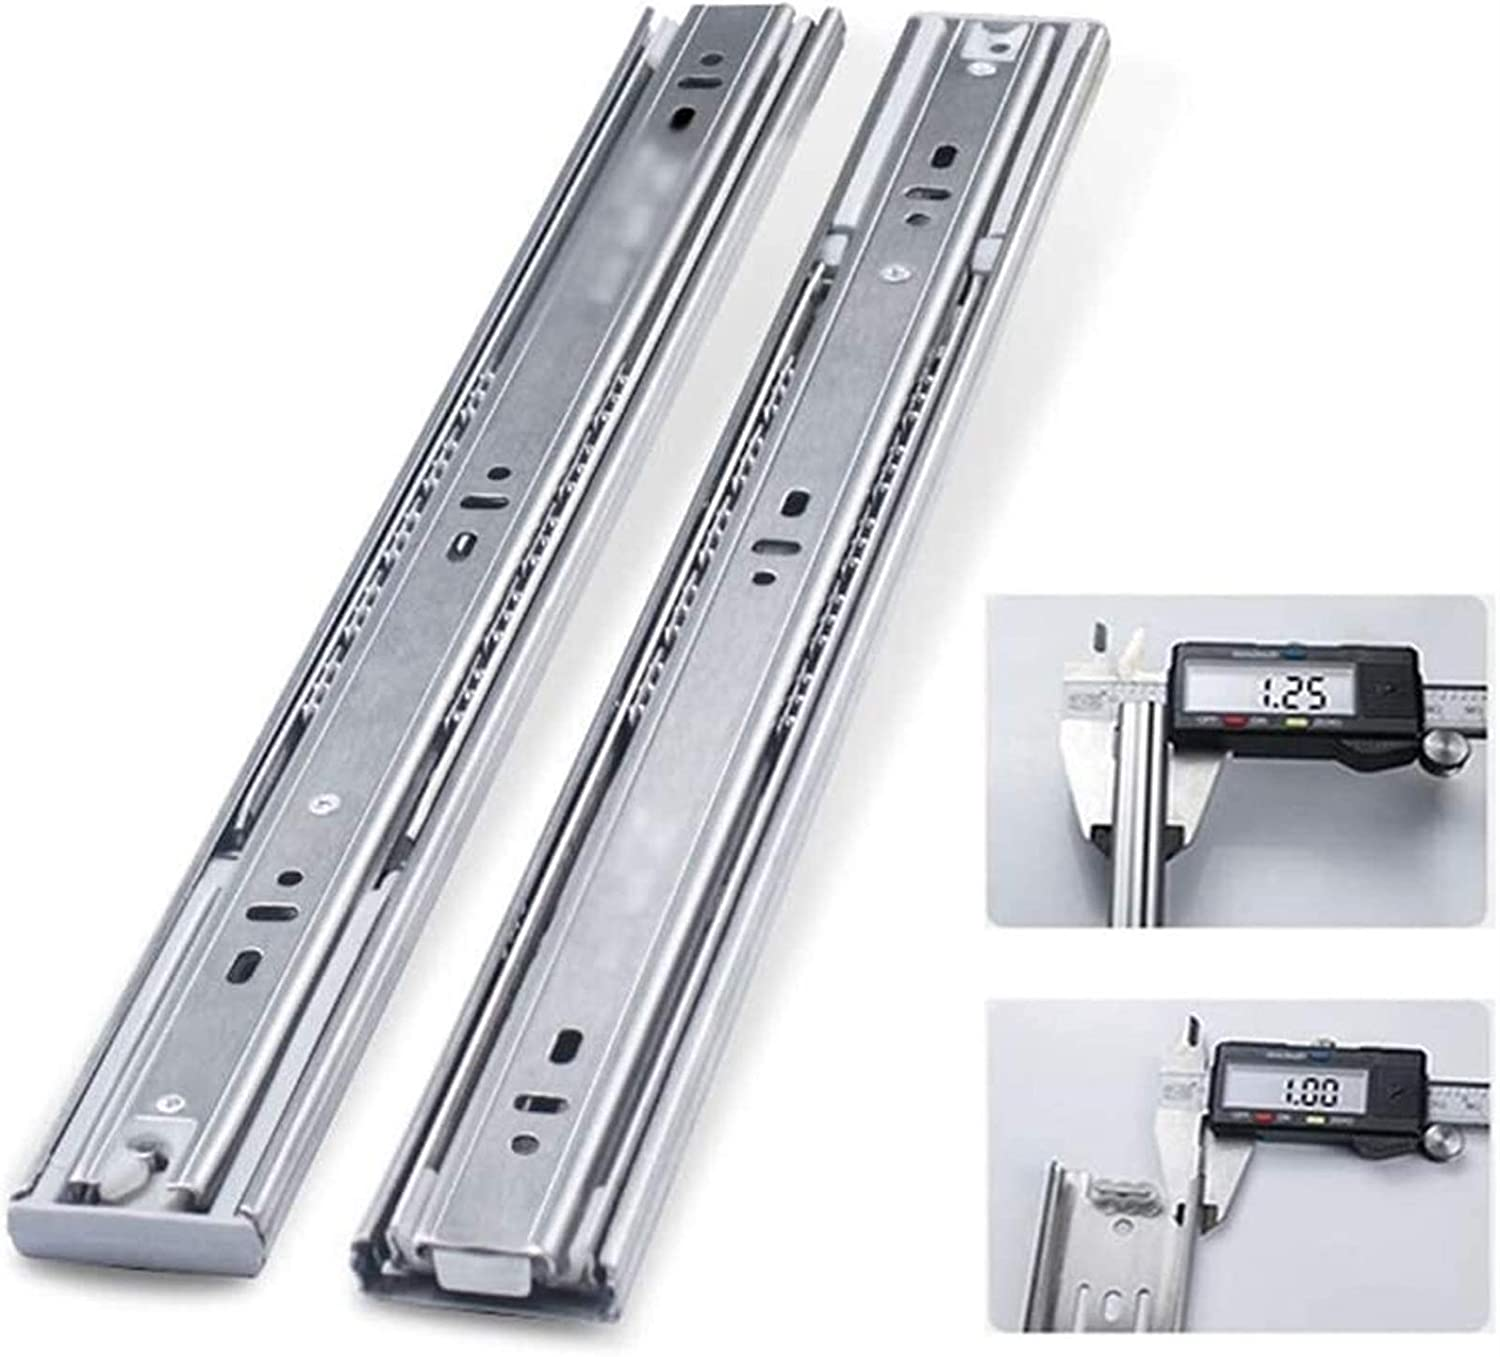 YDSHOLL Heavy-Duty Max 48% OFF 70kg Drawer Runners National uniform free shipping Fully Fold 3 Extended Ba